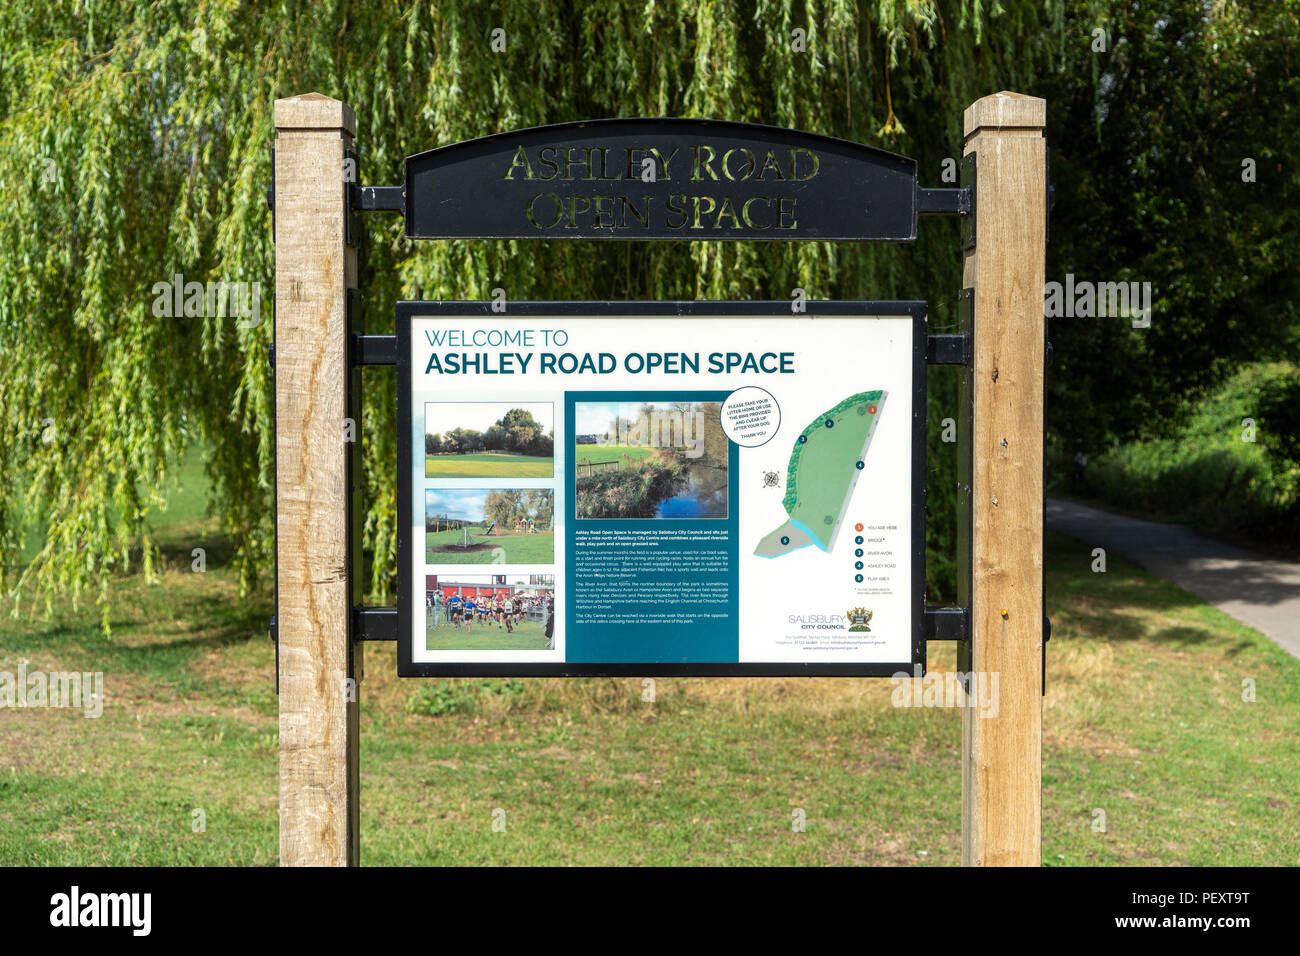 Ashley Road open space sign in Salisbury Wiltshire UK - Stock Image